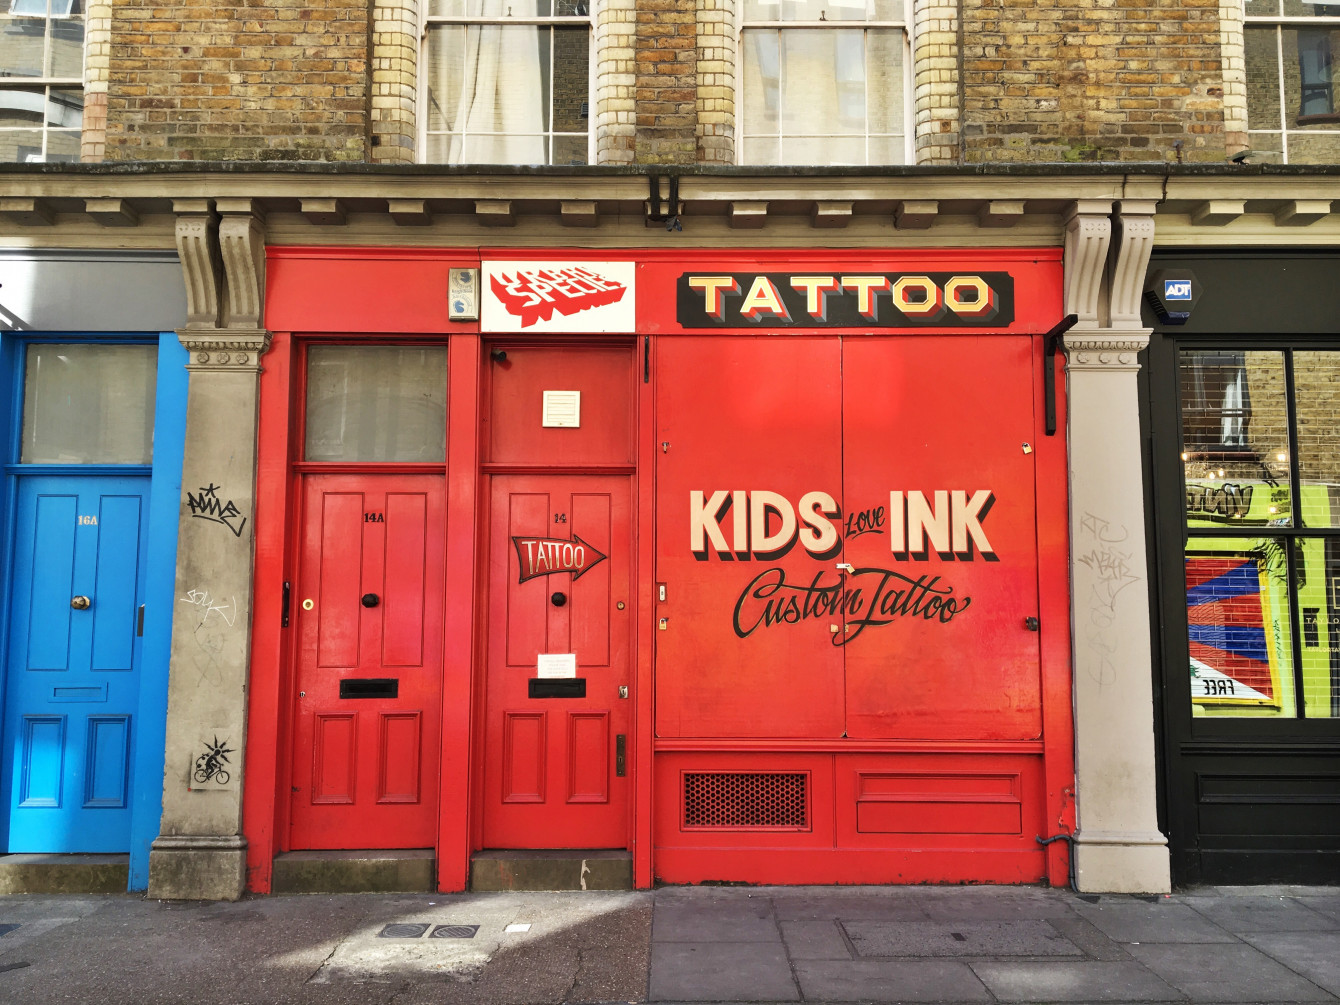 Kids Love Ink, à Brick Lane